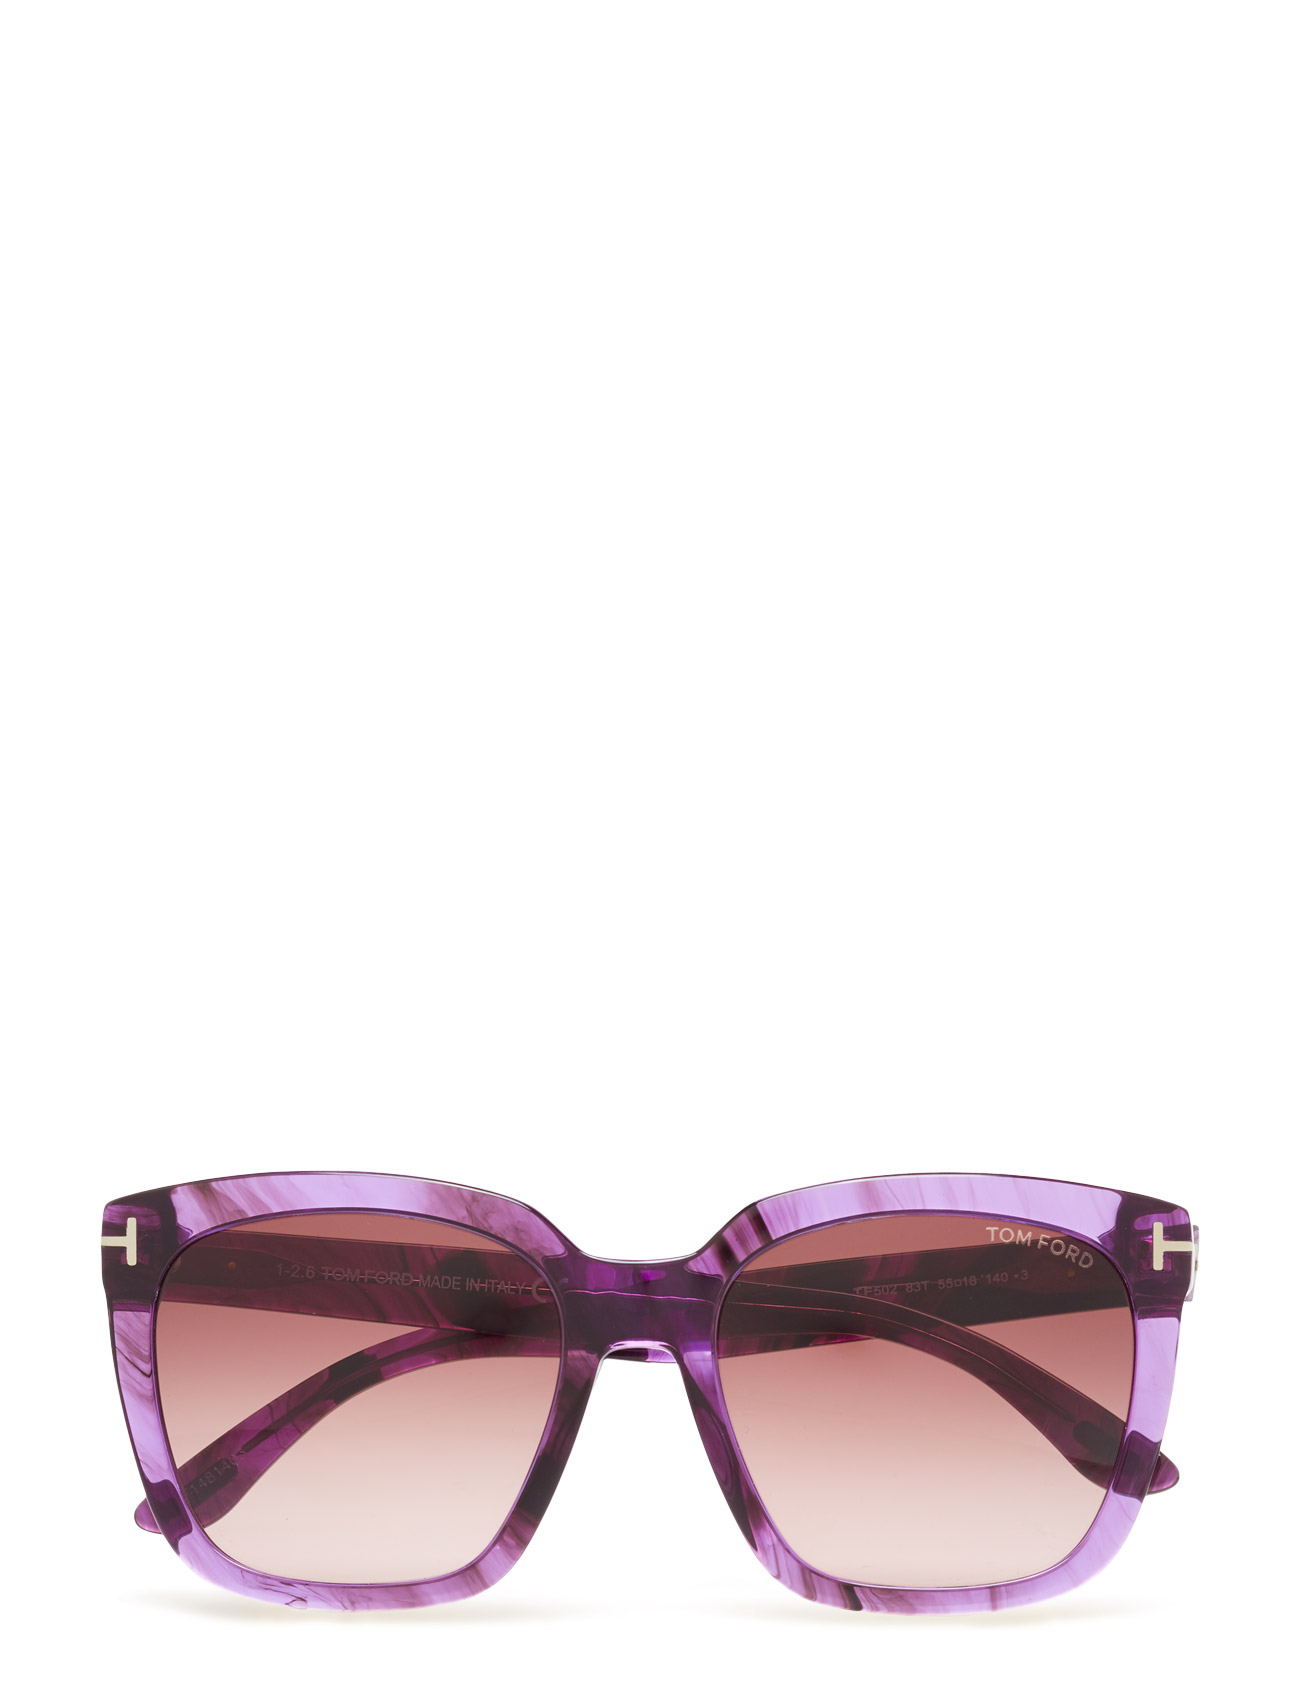 2061b998f27dd Tom Ford Sunglasses Tom Ford Amarra (83t Violet other   Gradient ...